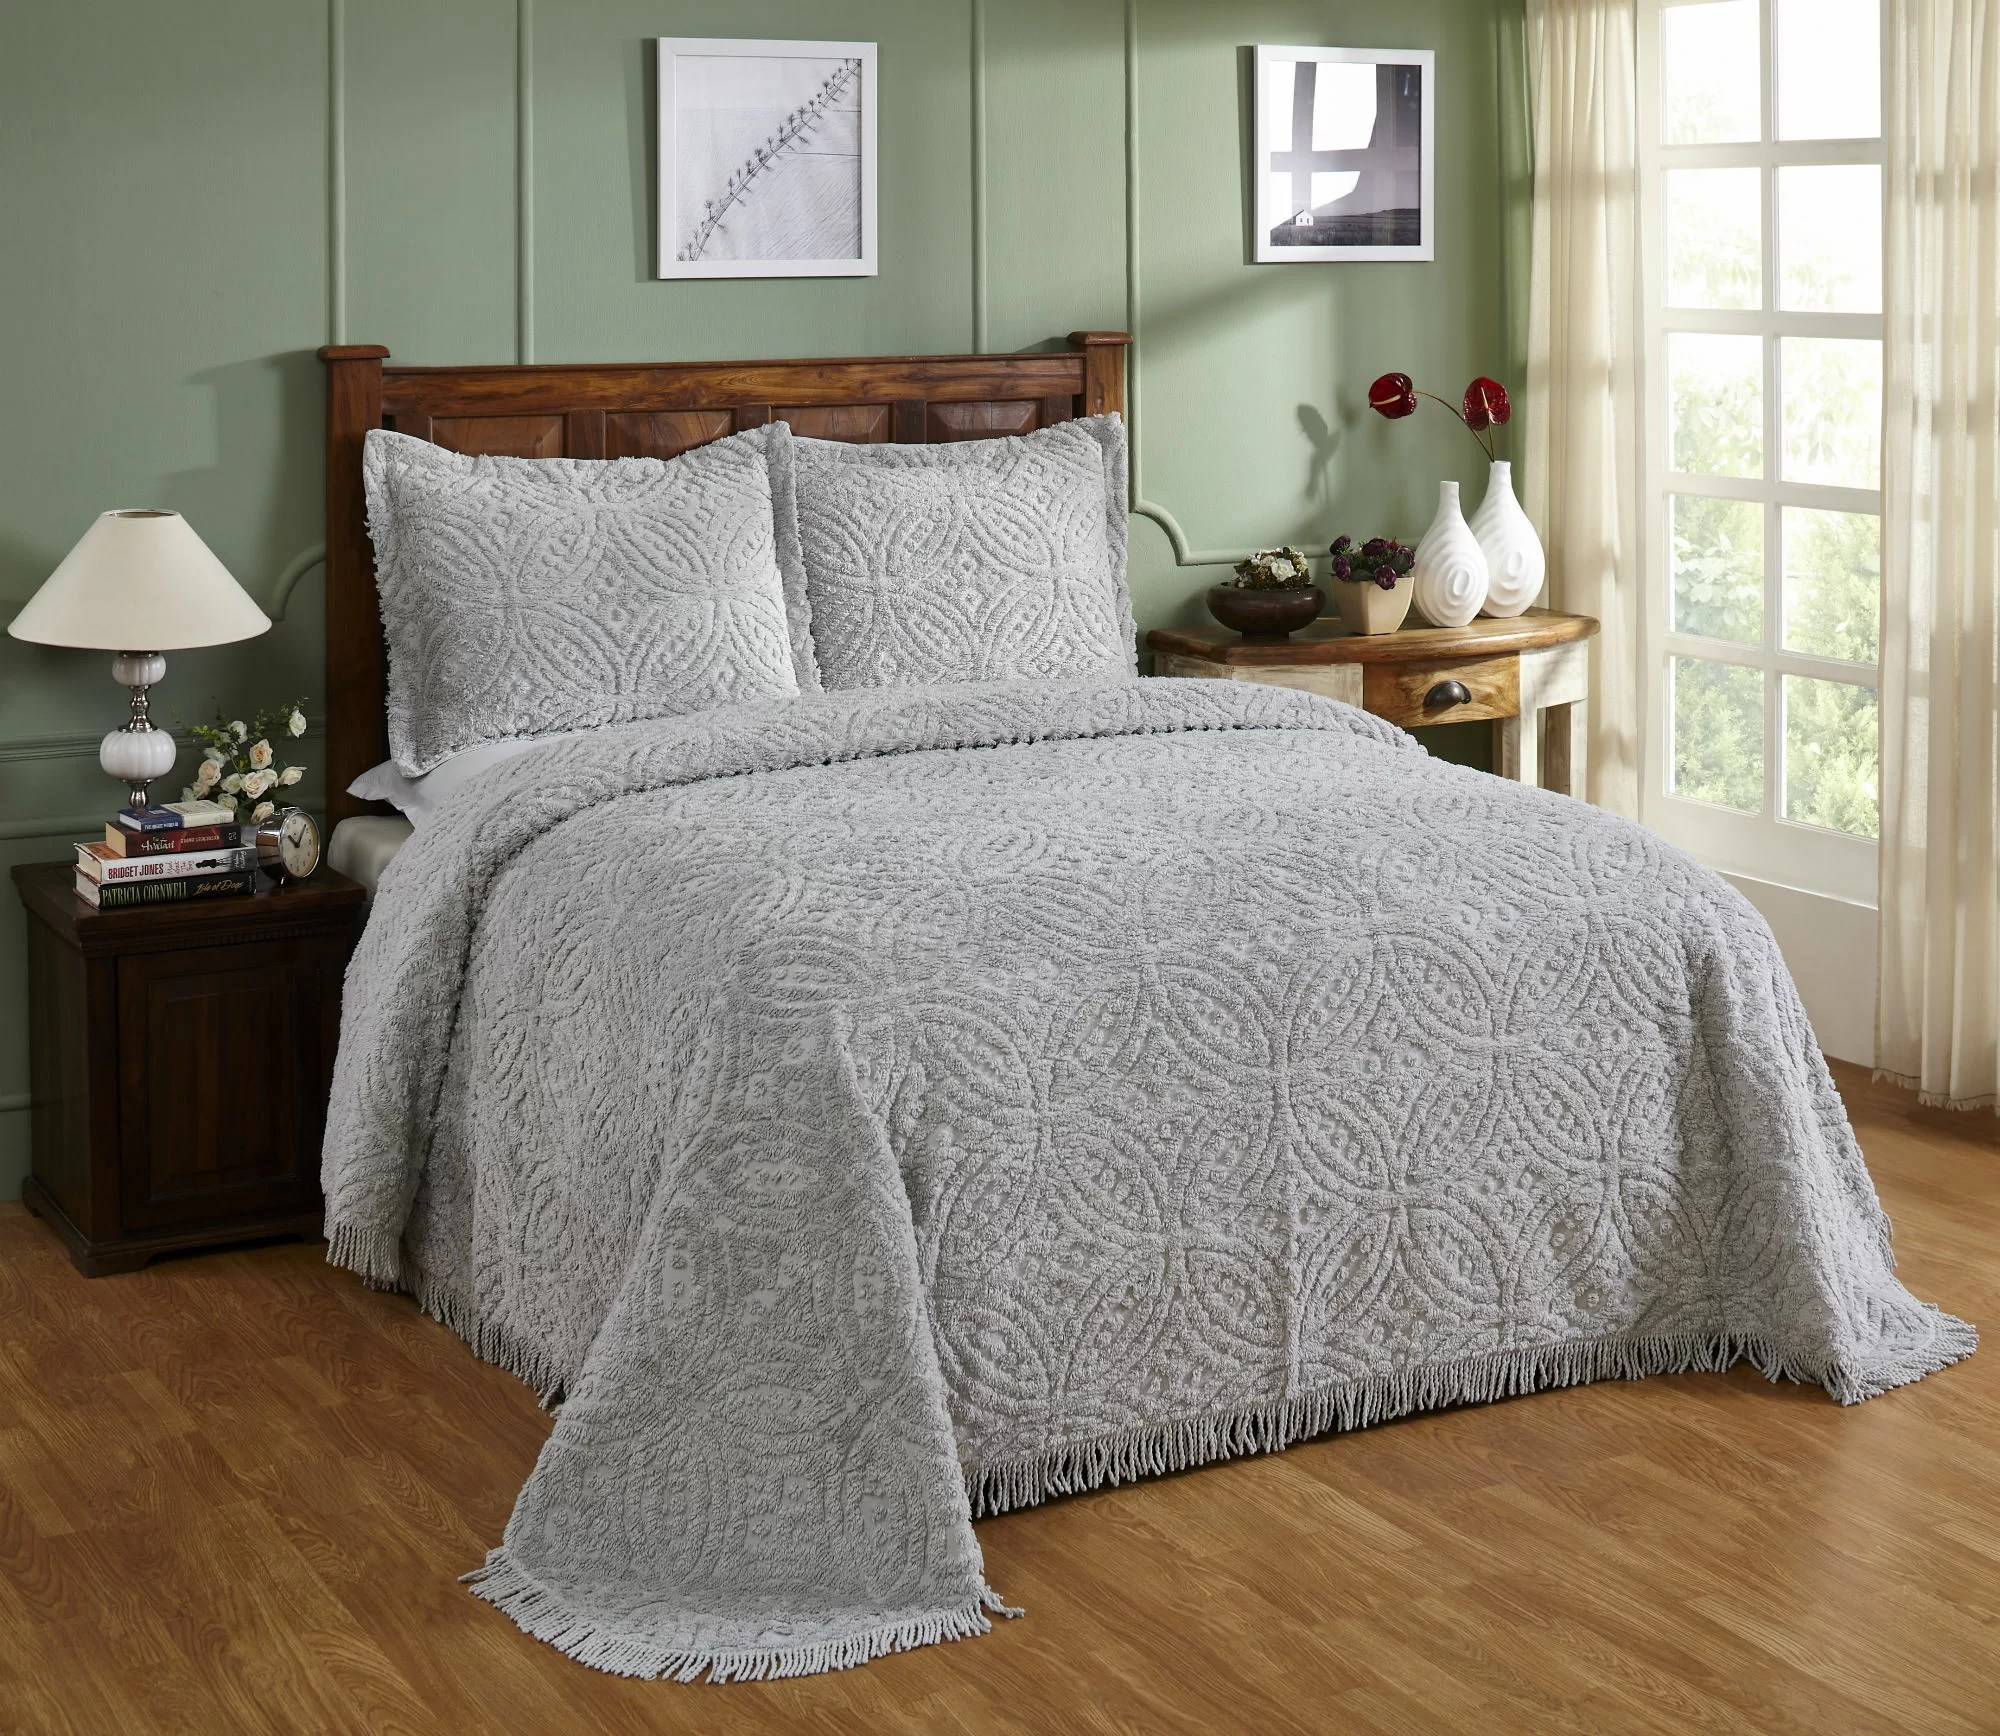 Single Coverlet Suzann Single Coverlet